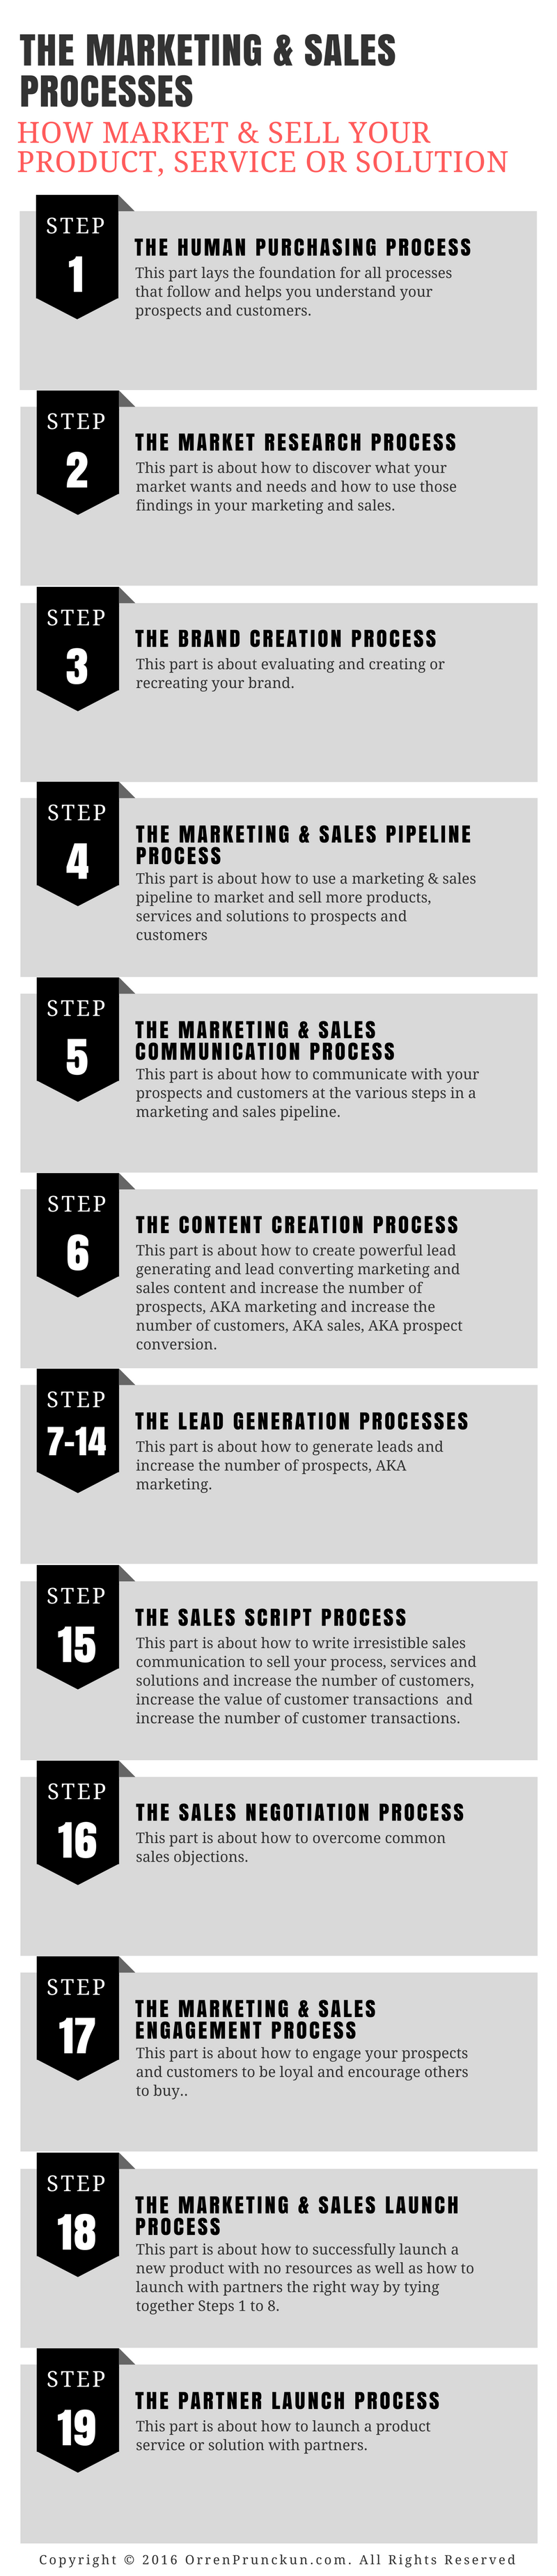 The Marketing & Sales Processes Infographic